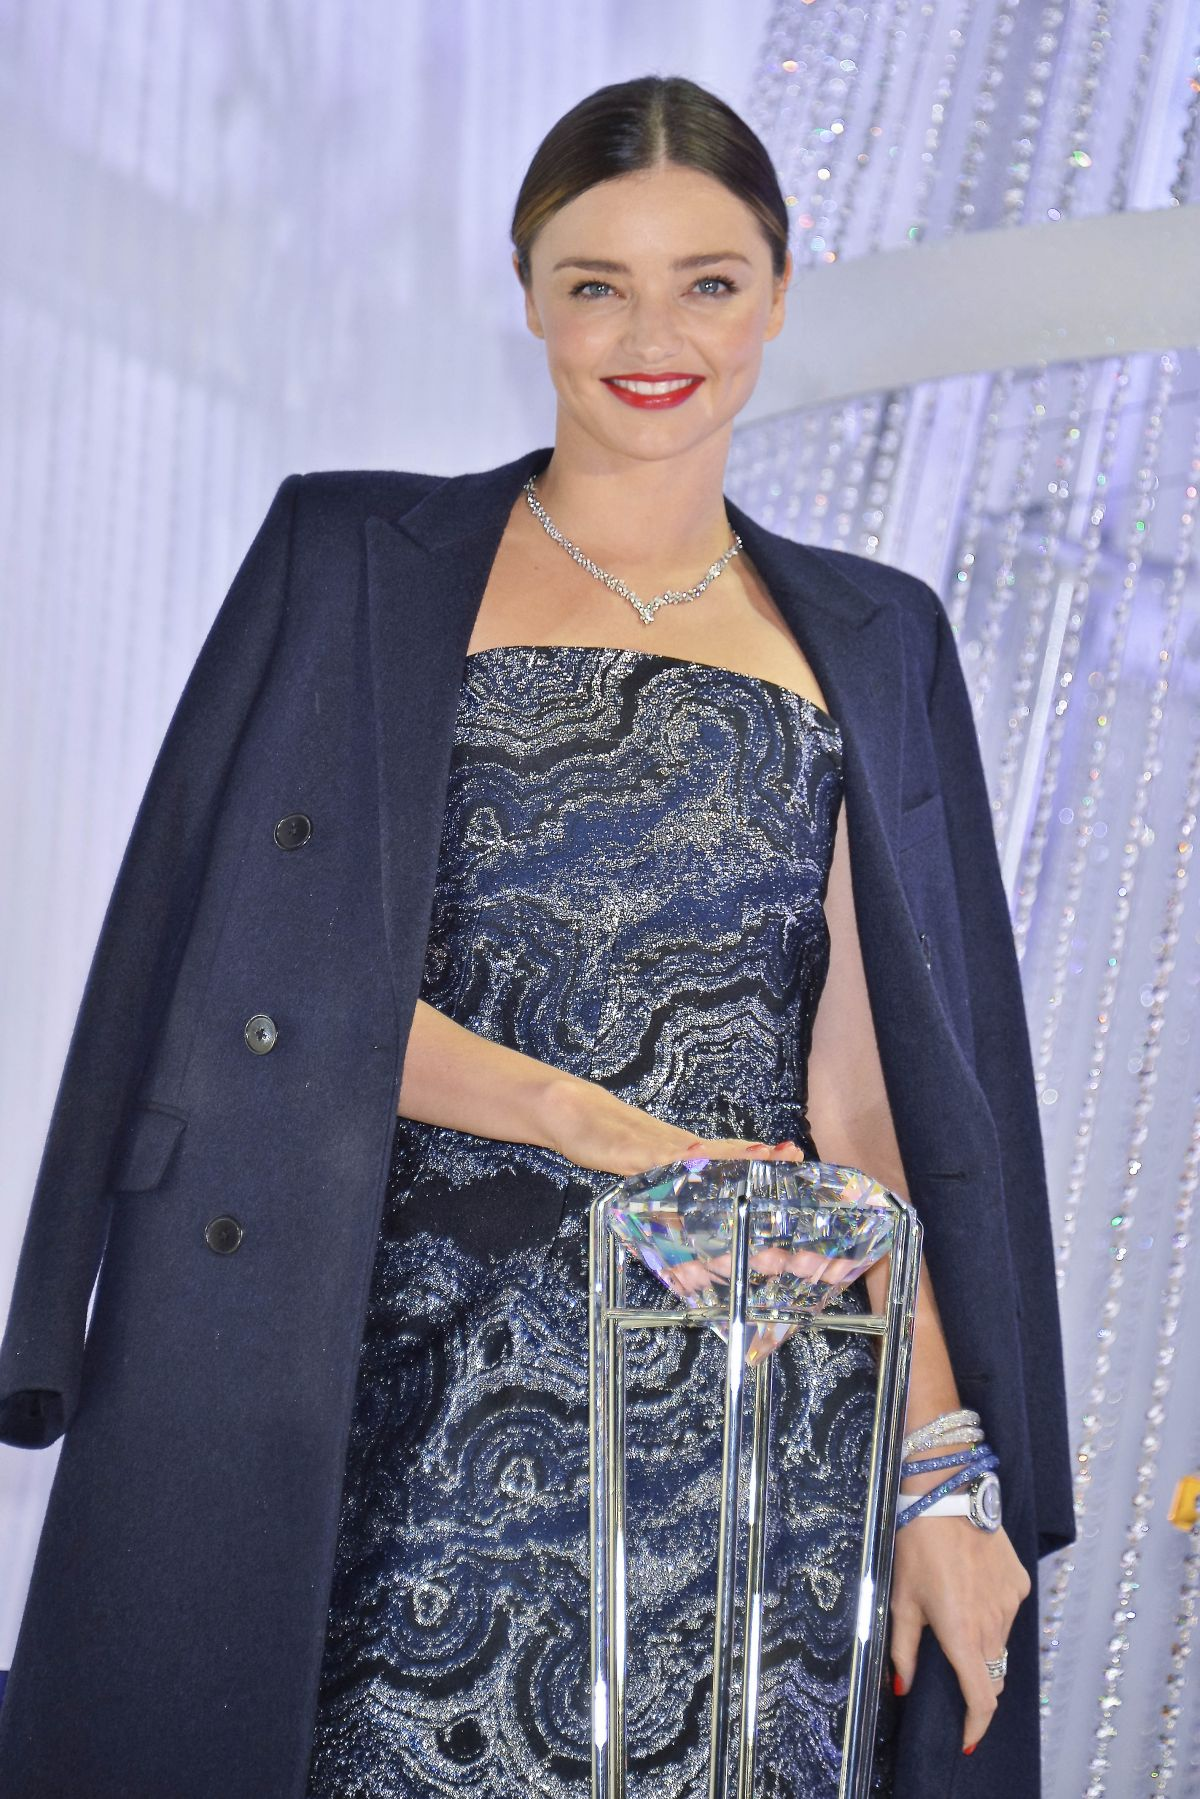 MIRANDA KERR at Swarovski Christmas Tree Lighting Ceremony in Tokyo 12/13/2015